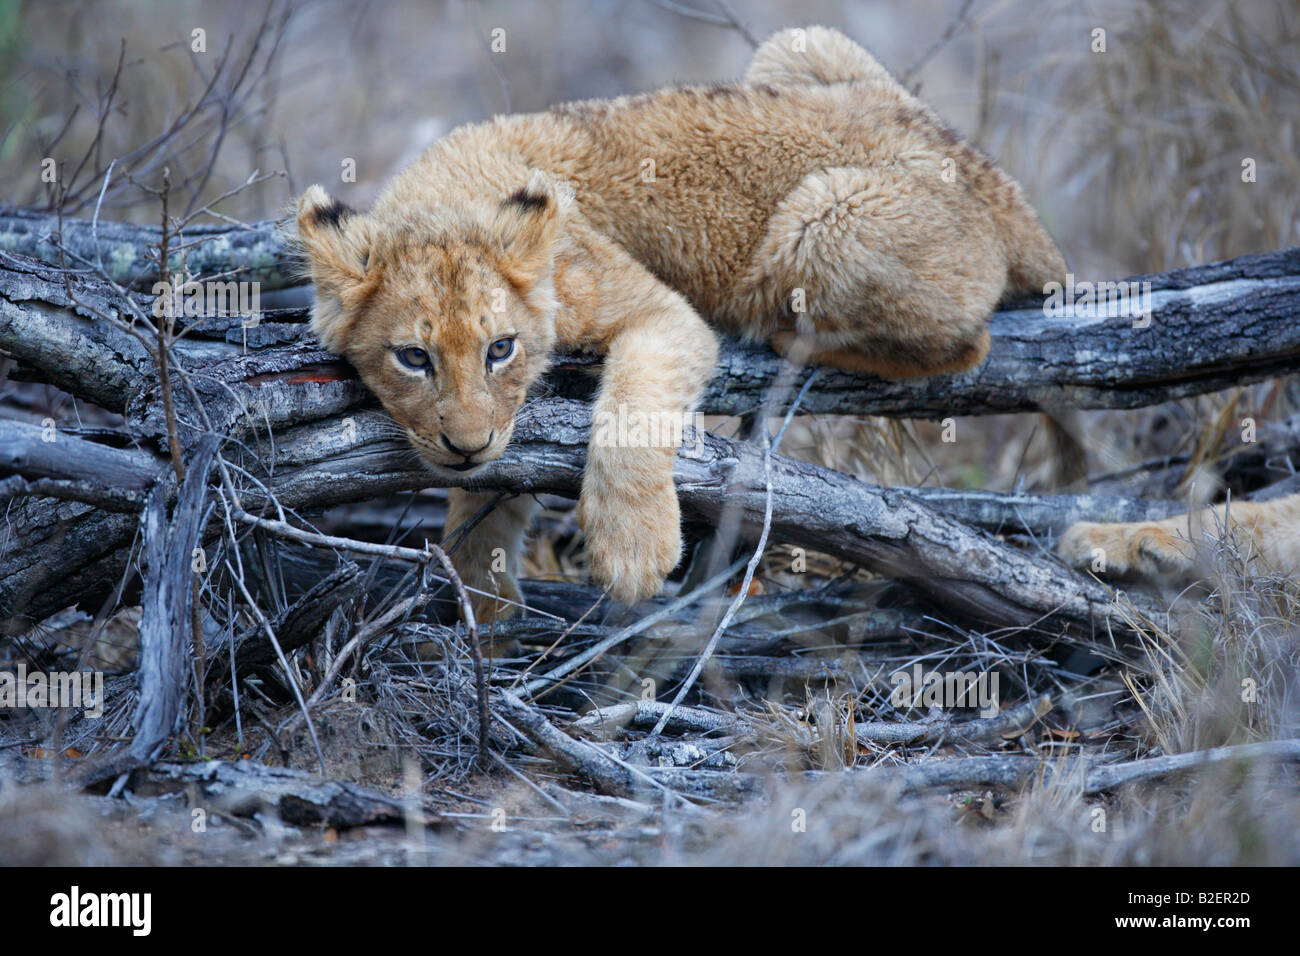 A lion cub hanging listlessly on scrub listening for sounds coming from behind - Stock Image